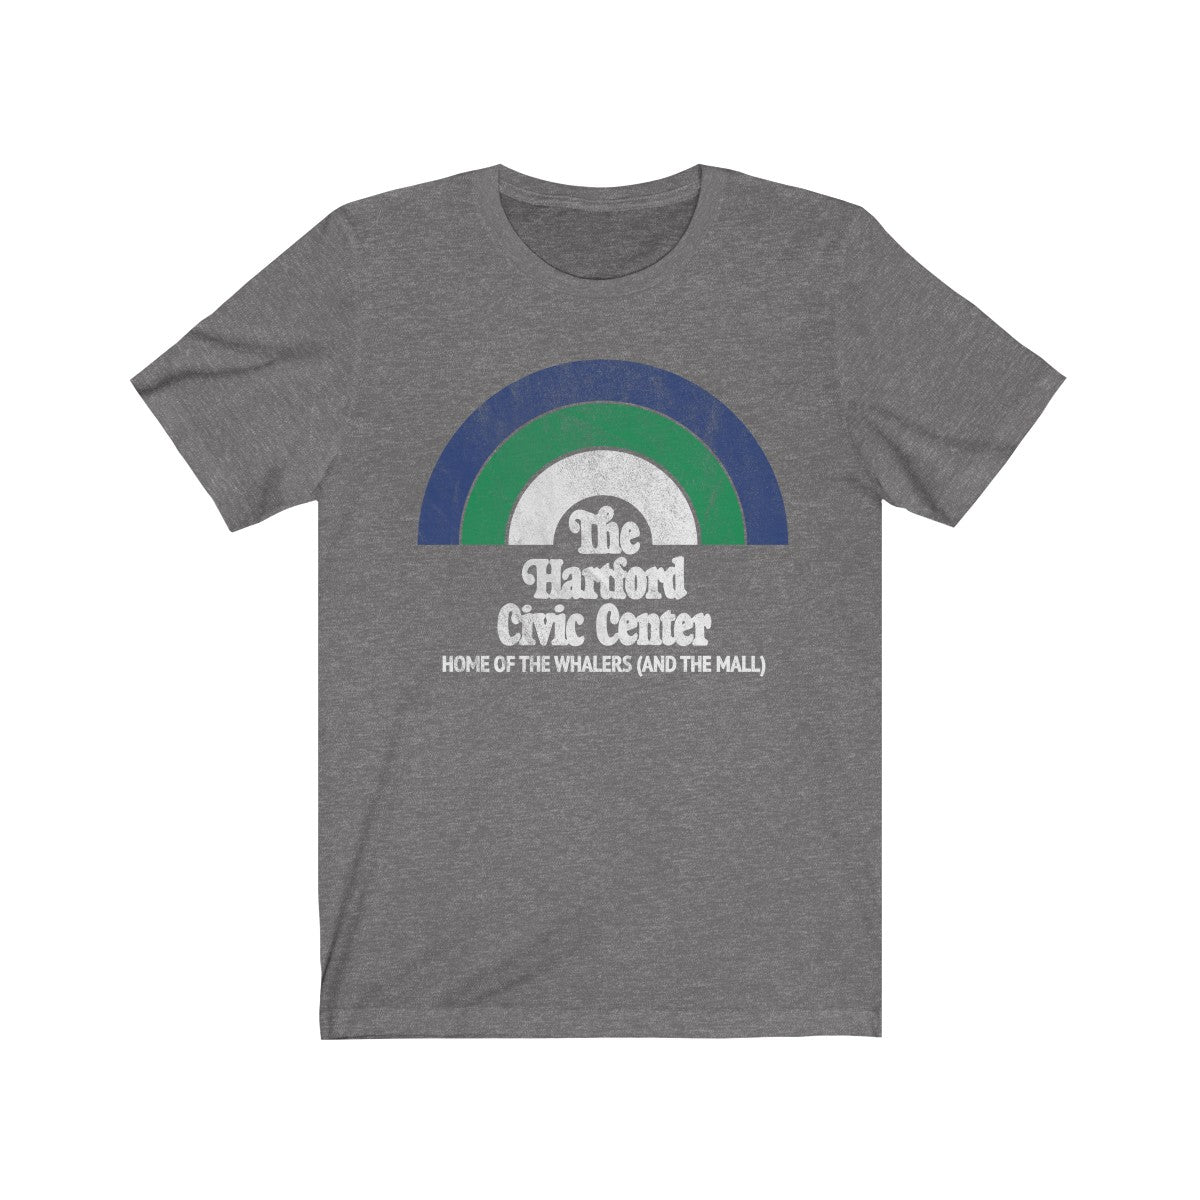 Retro The Hartford Civic Center Unisex Jersey Short Sleeve Tee in Deep Heather